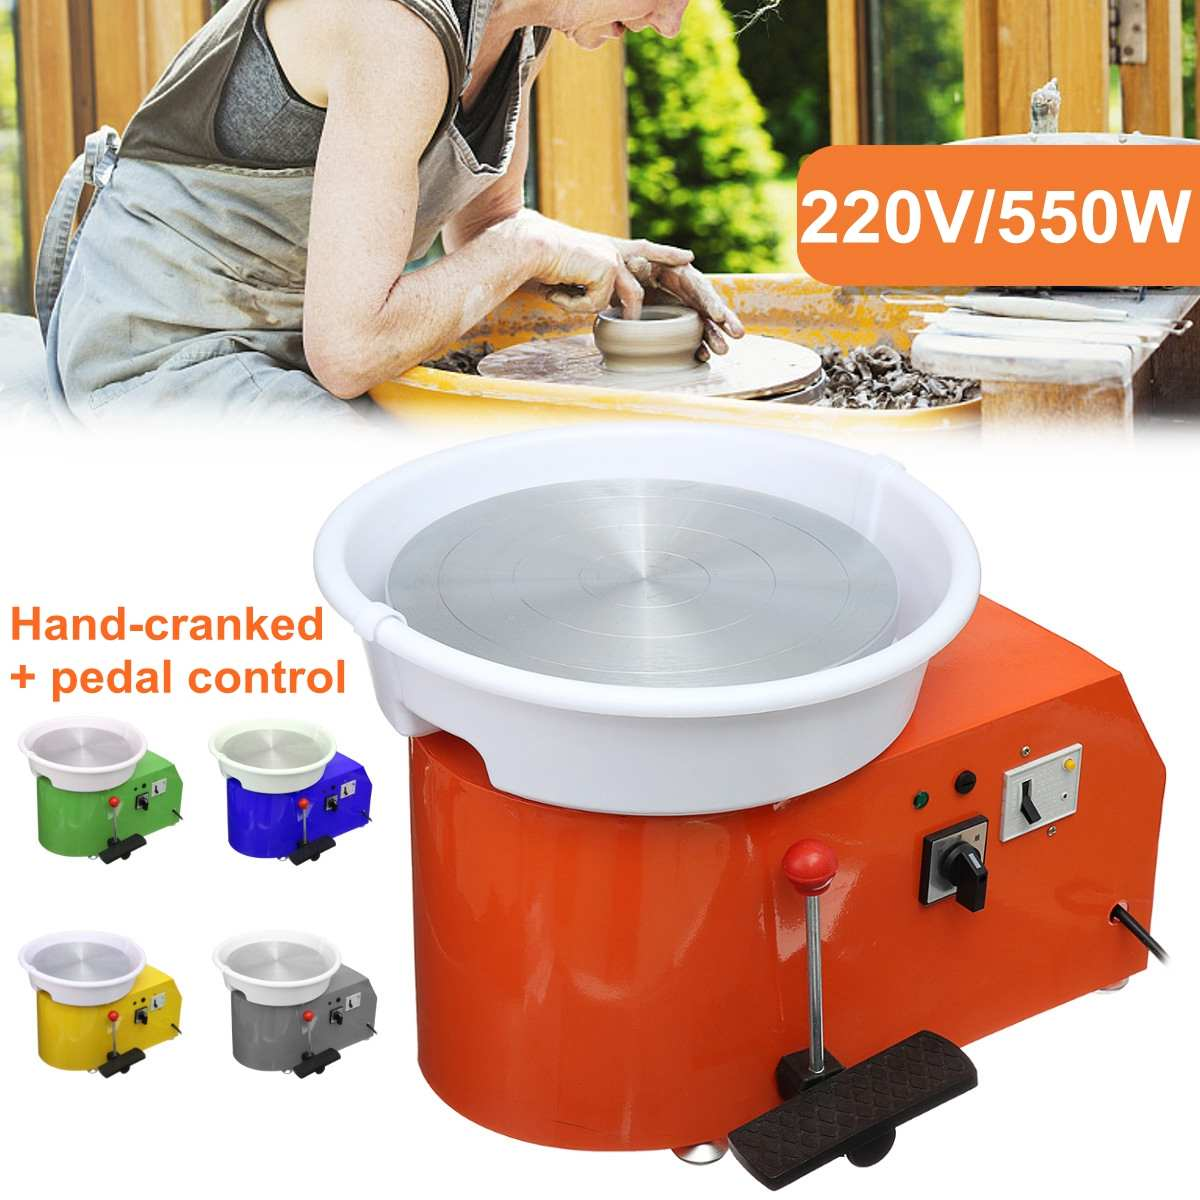 Turning Electric Pottery Wheel Ceramic Machine 220V 550W 300mm Ceramic Clay Potter Kit For Ceramic Work Ceramic learning Machine